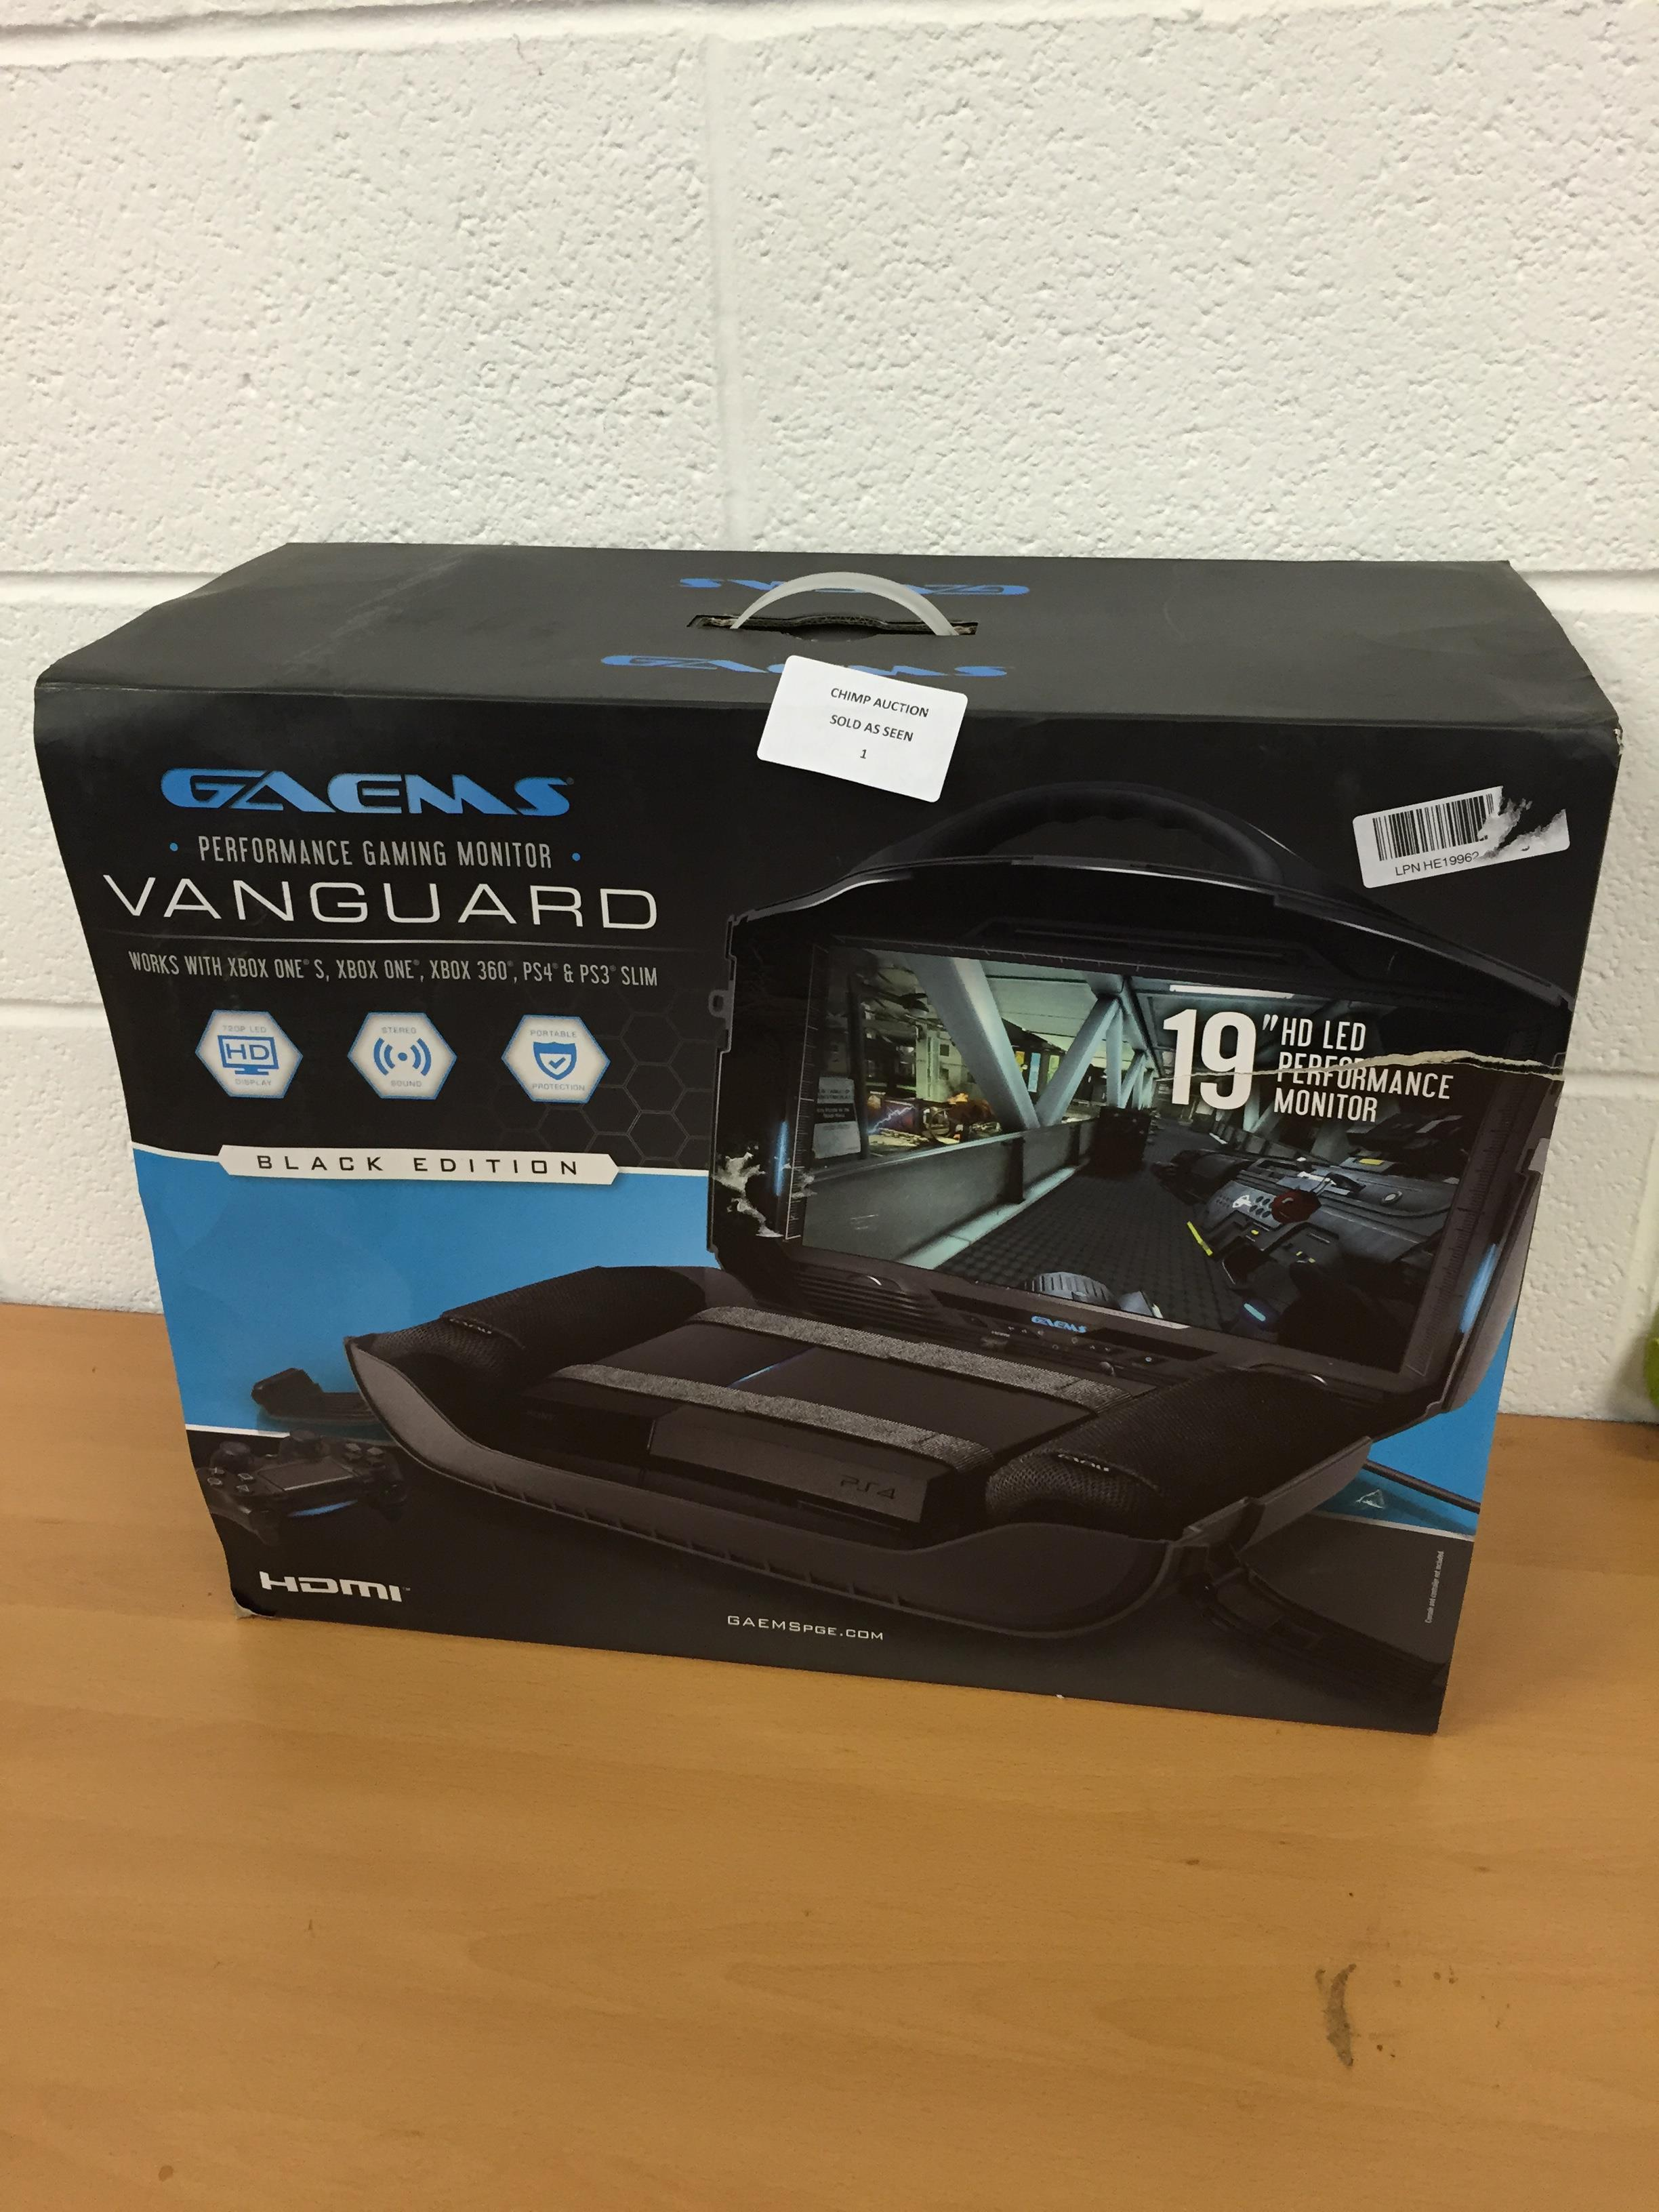 Lot 1 - Gaems Vanguard Personal Gaming Sytem (PS4/ Xbox One) RRP £599.99.